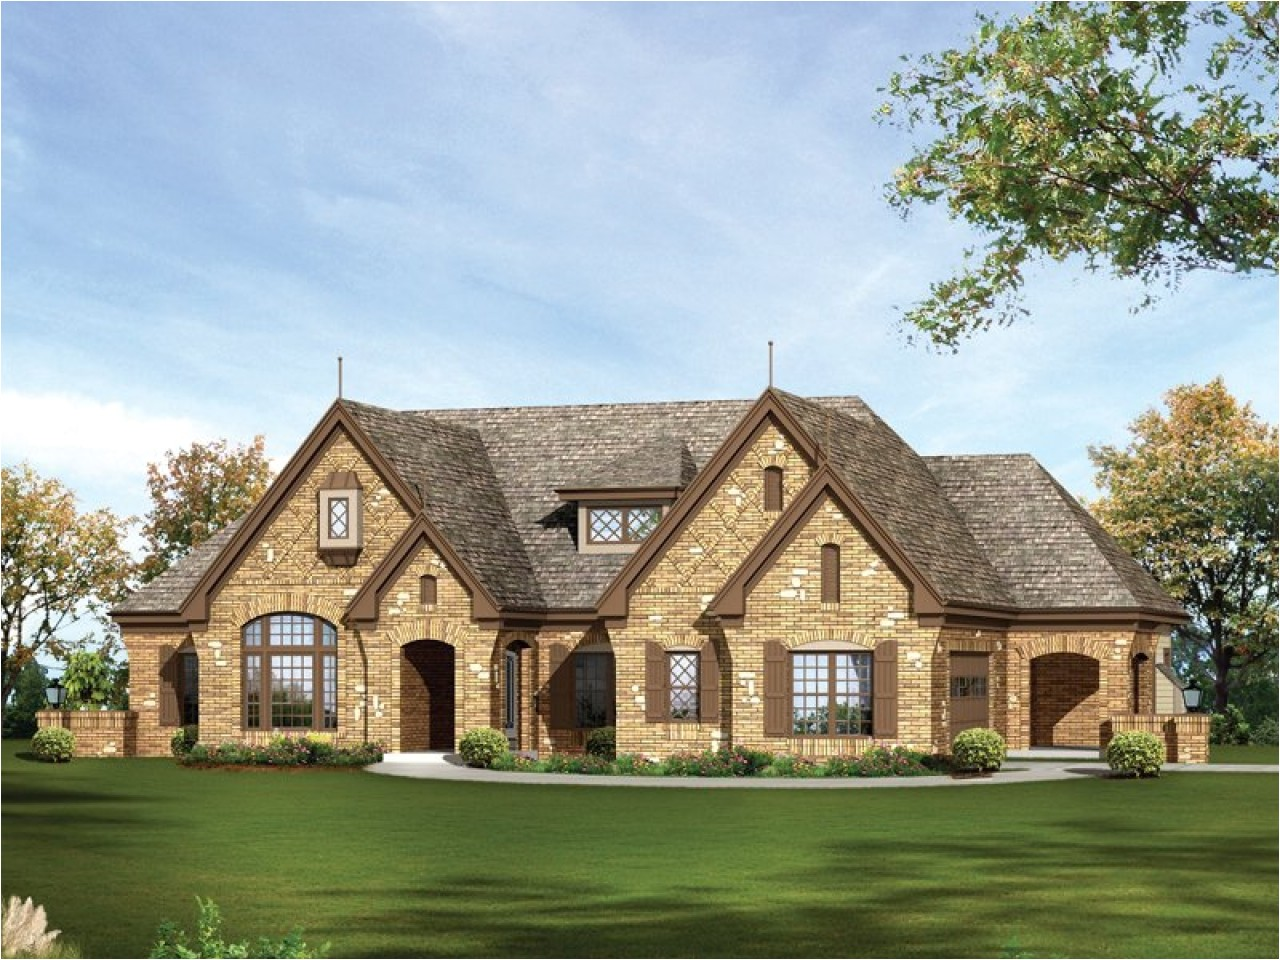 187b578c86932eba one story country house stone one story house plans for ranch style homes